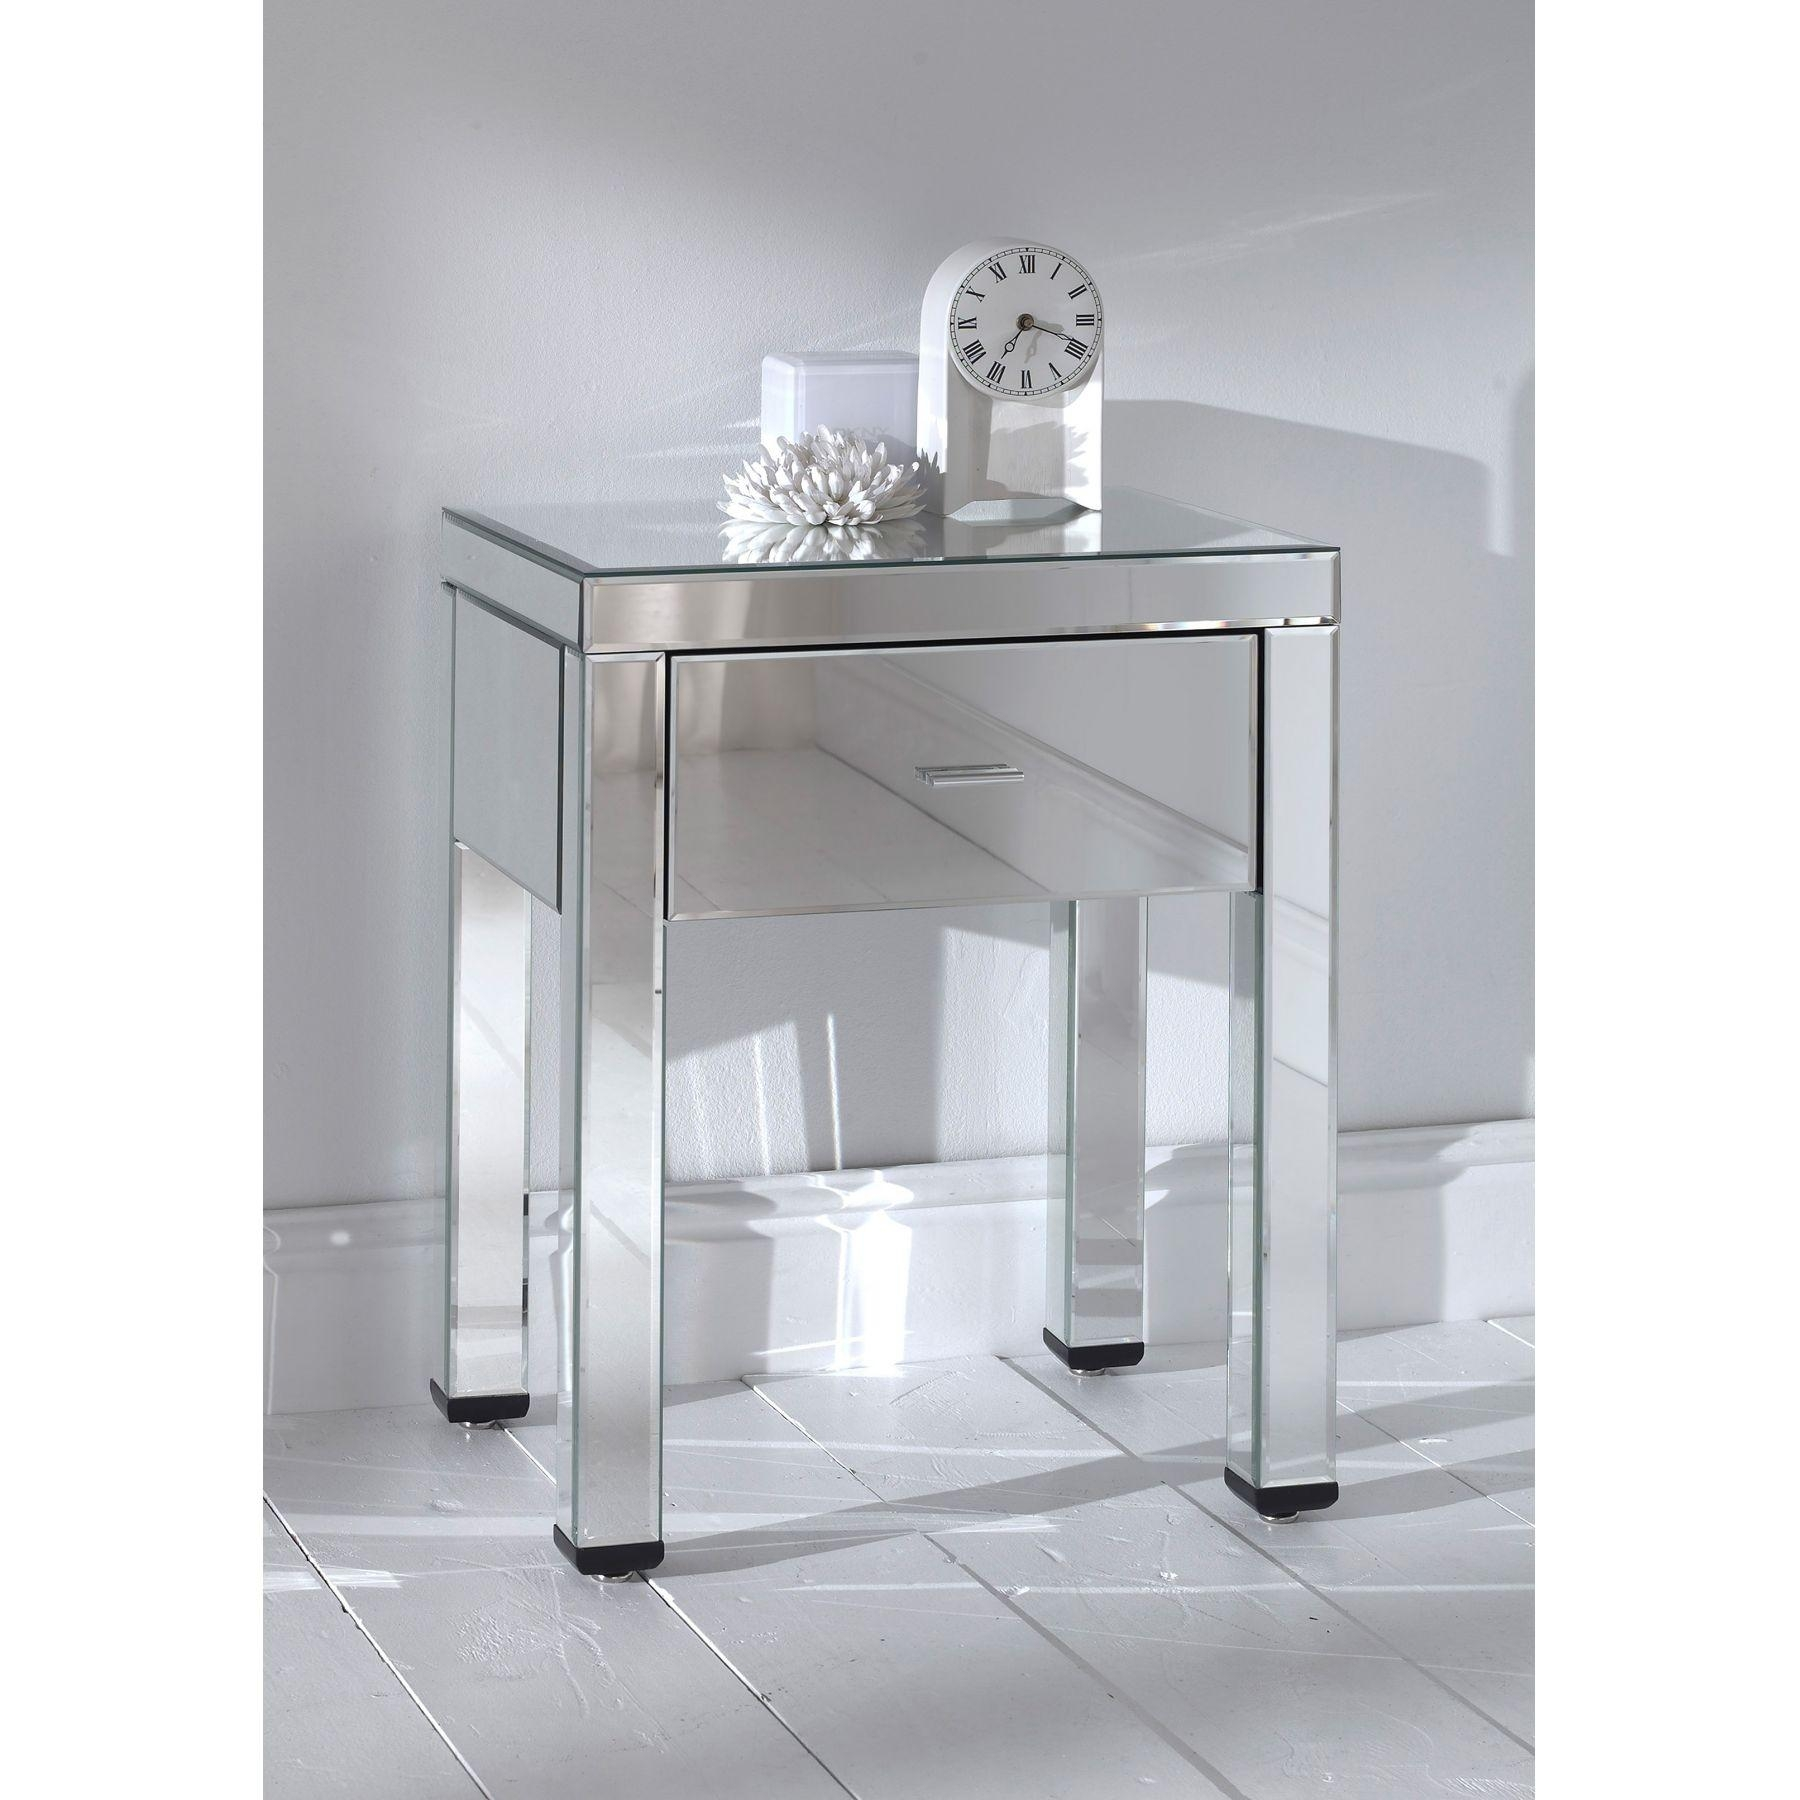 Famous Mirrored Furniture — Curtain – Mirrors – Wall Decor For Mirrored Furniture (Image 7 of 20)